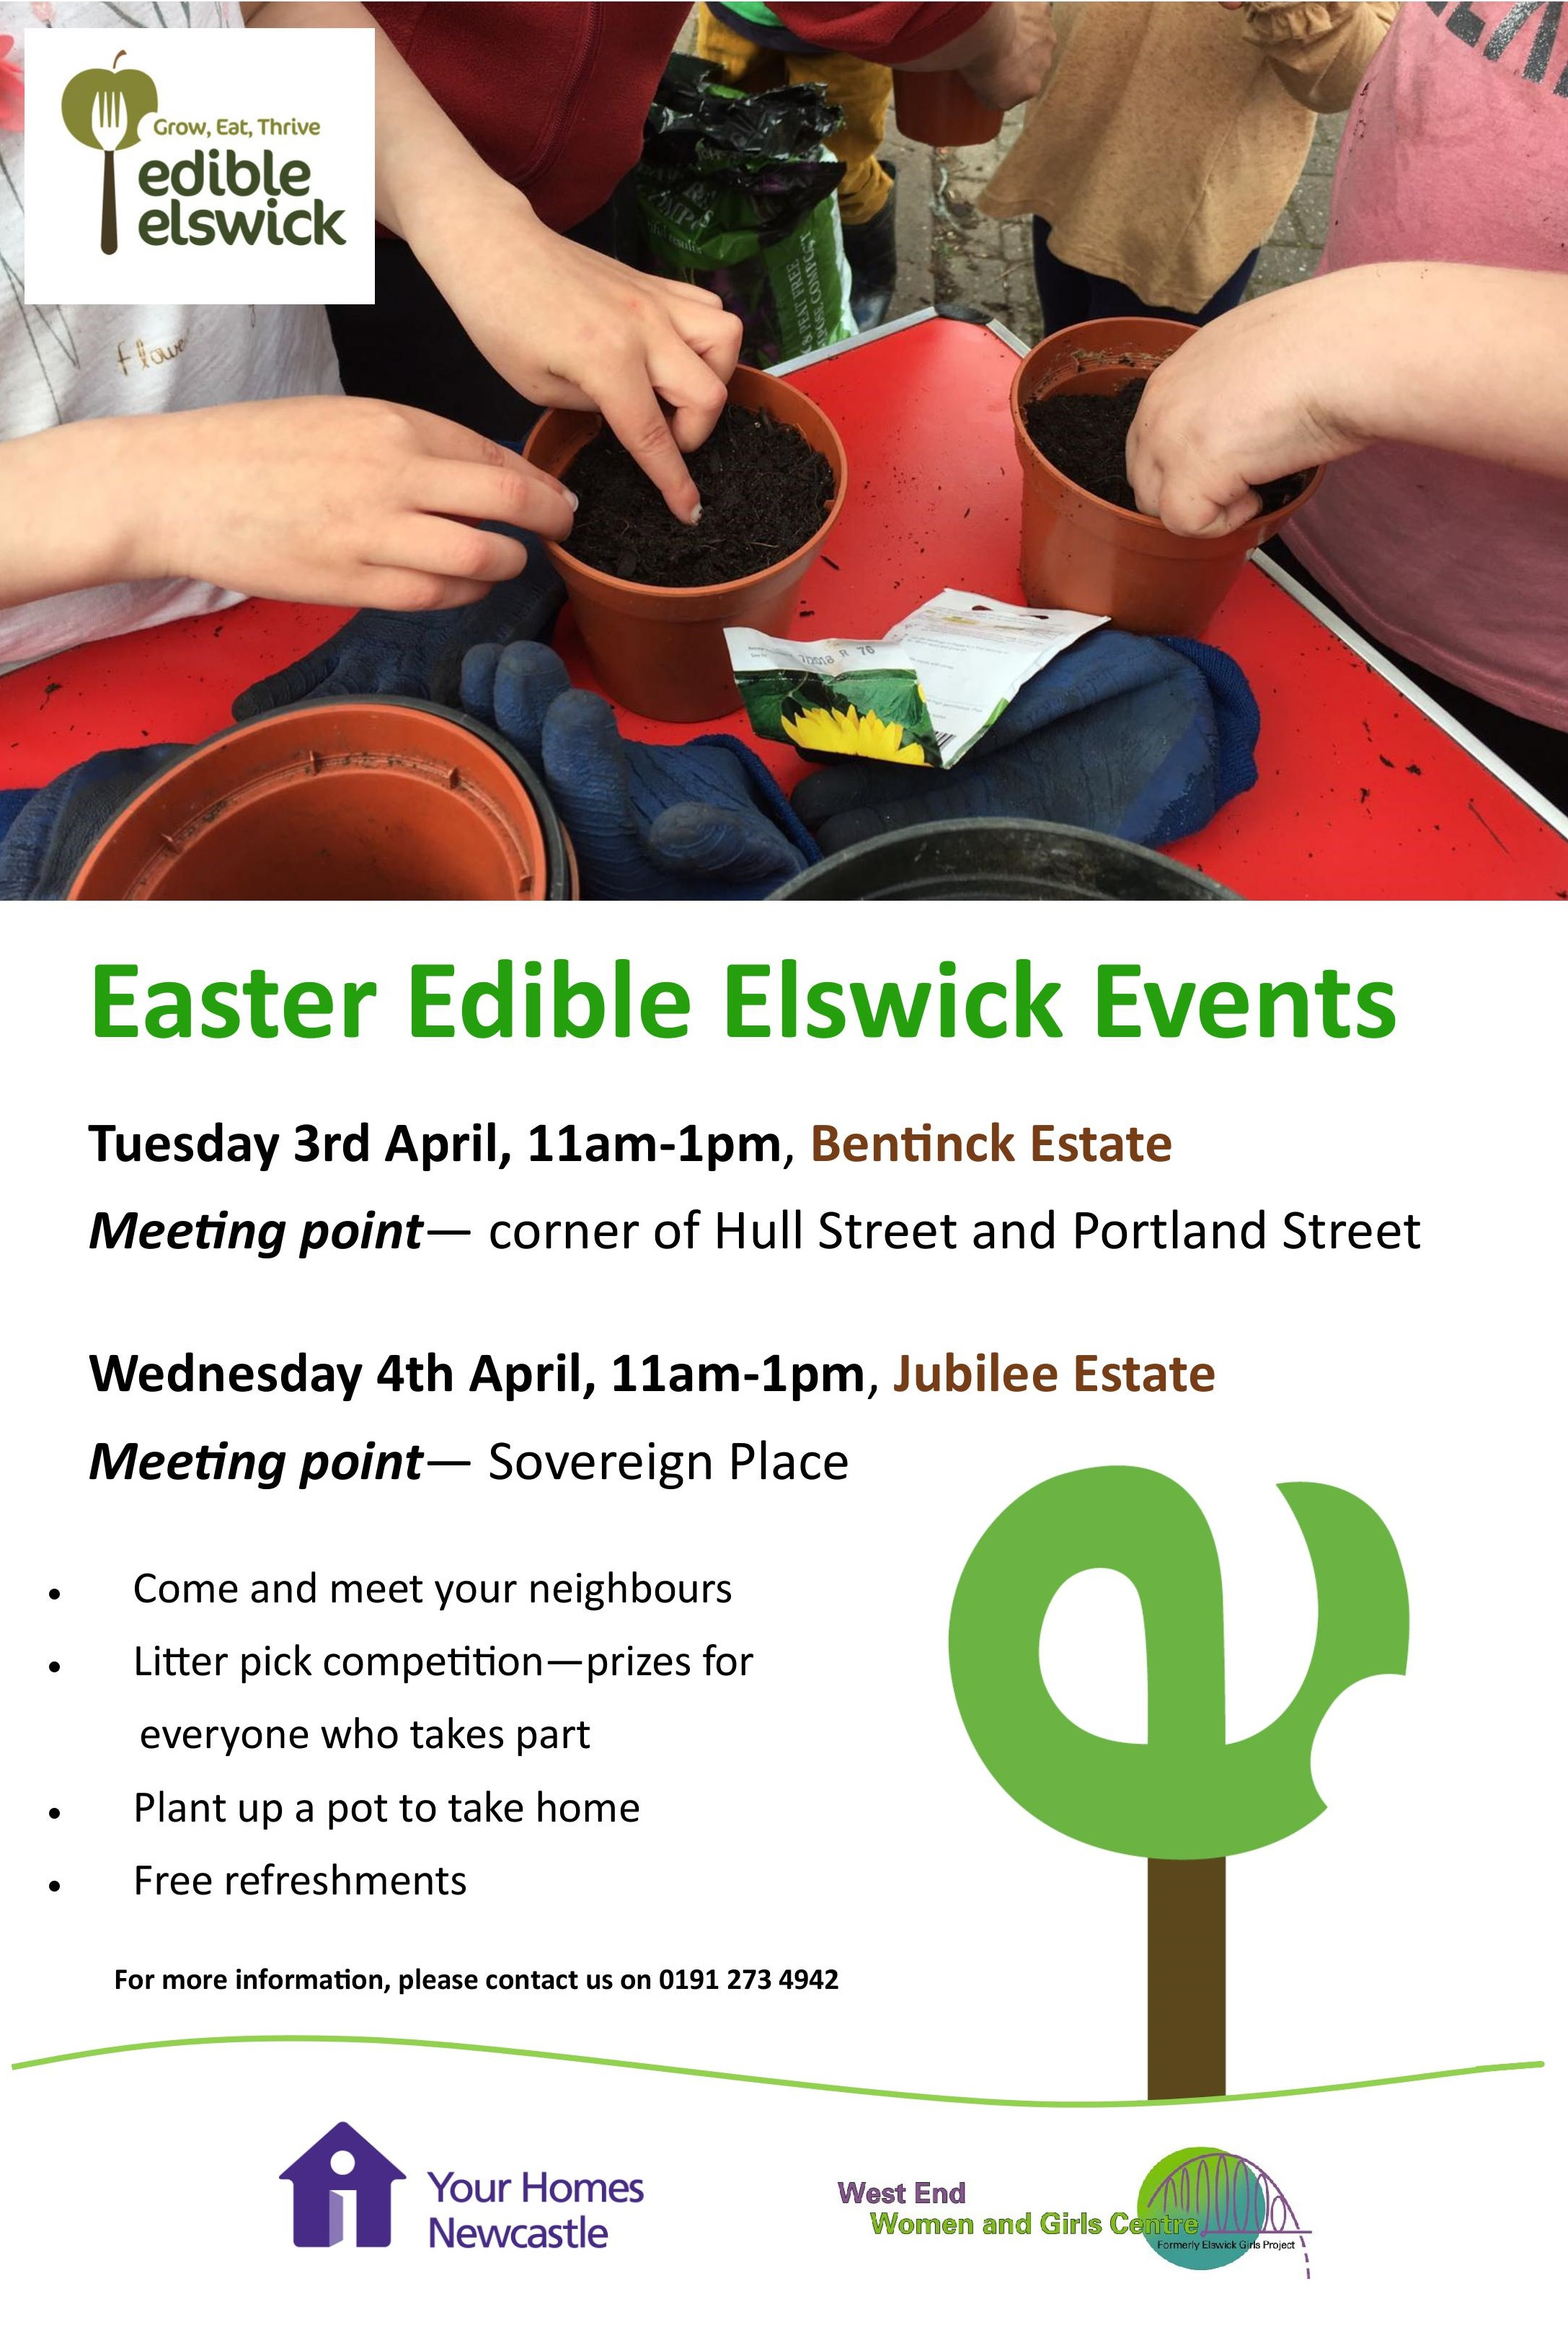 Tidy up and Plant Sessions - Come along and join us during the Easter half term on the Bentinck and Jubilee Estates! Tuesday 3rd April, 11am-1pm, Bentinck Estate Wednesday 4th April, 11am-1pm, Jubilee Estate Look forward to ... - Meeting your neighbours- Litter pick competition—prizes for everyone who takes part- Plant up a pot to take home- Free refreshmentsALL WELCOME! For more information, email hello@edibleelswick.co.uk or call 0191 273 4942